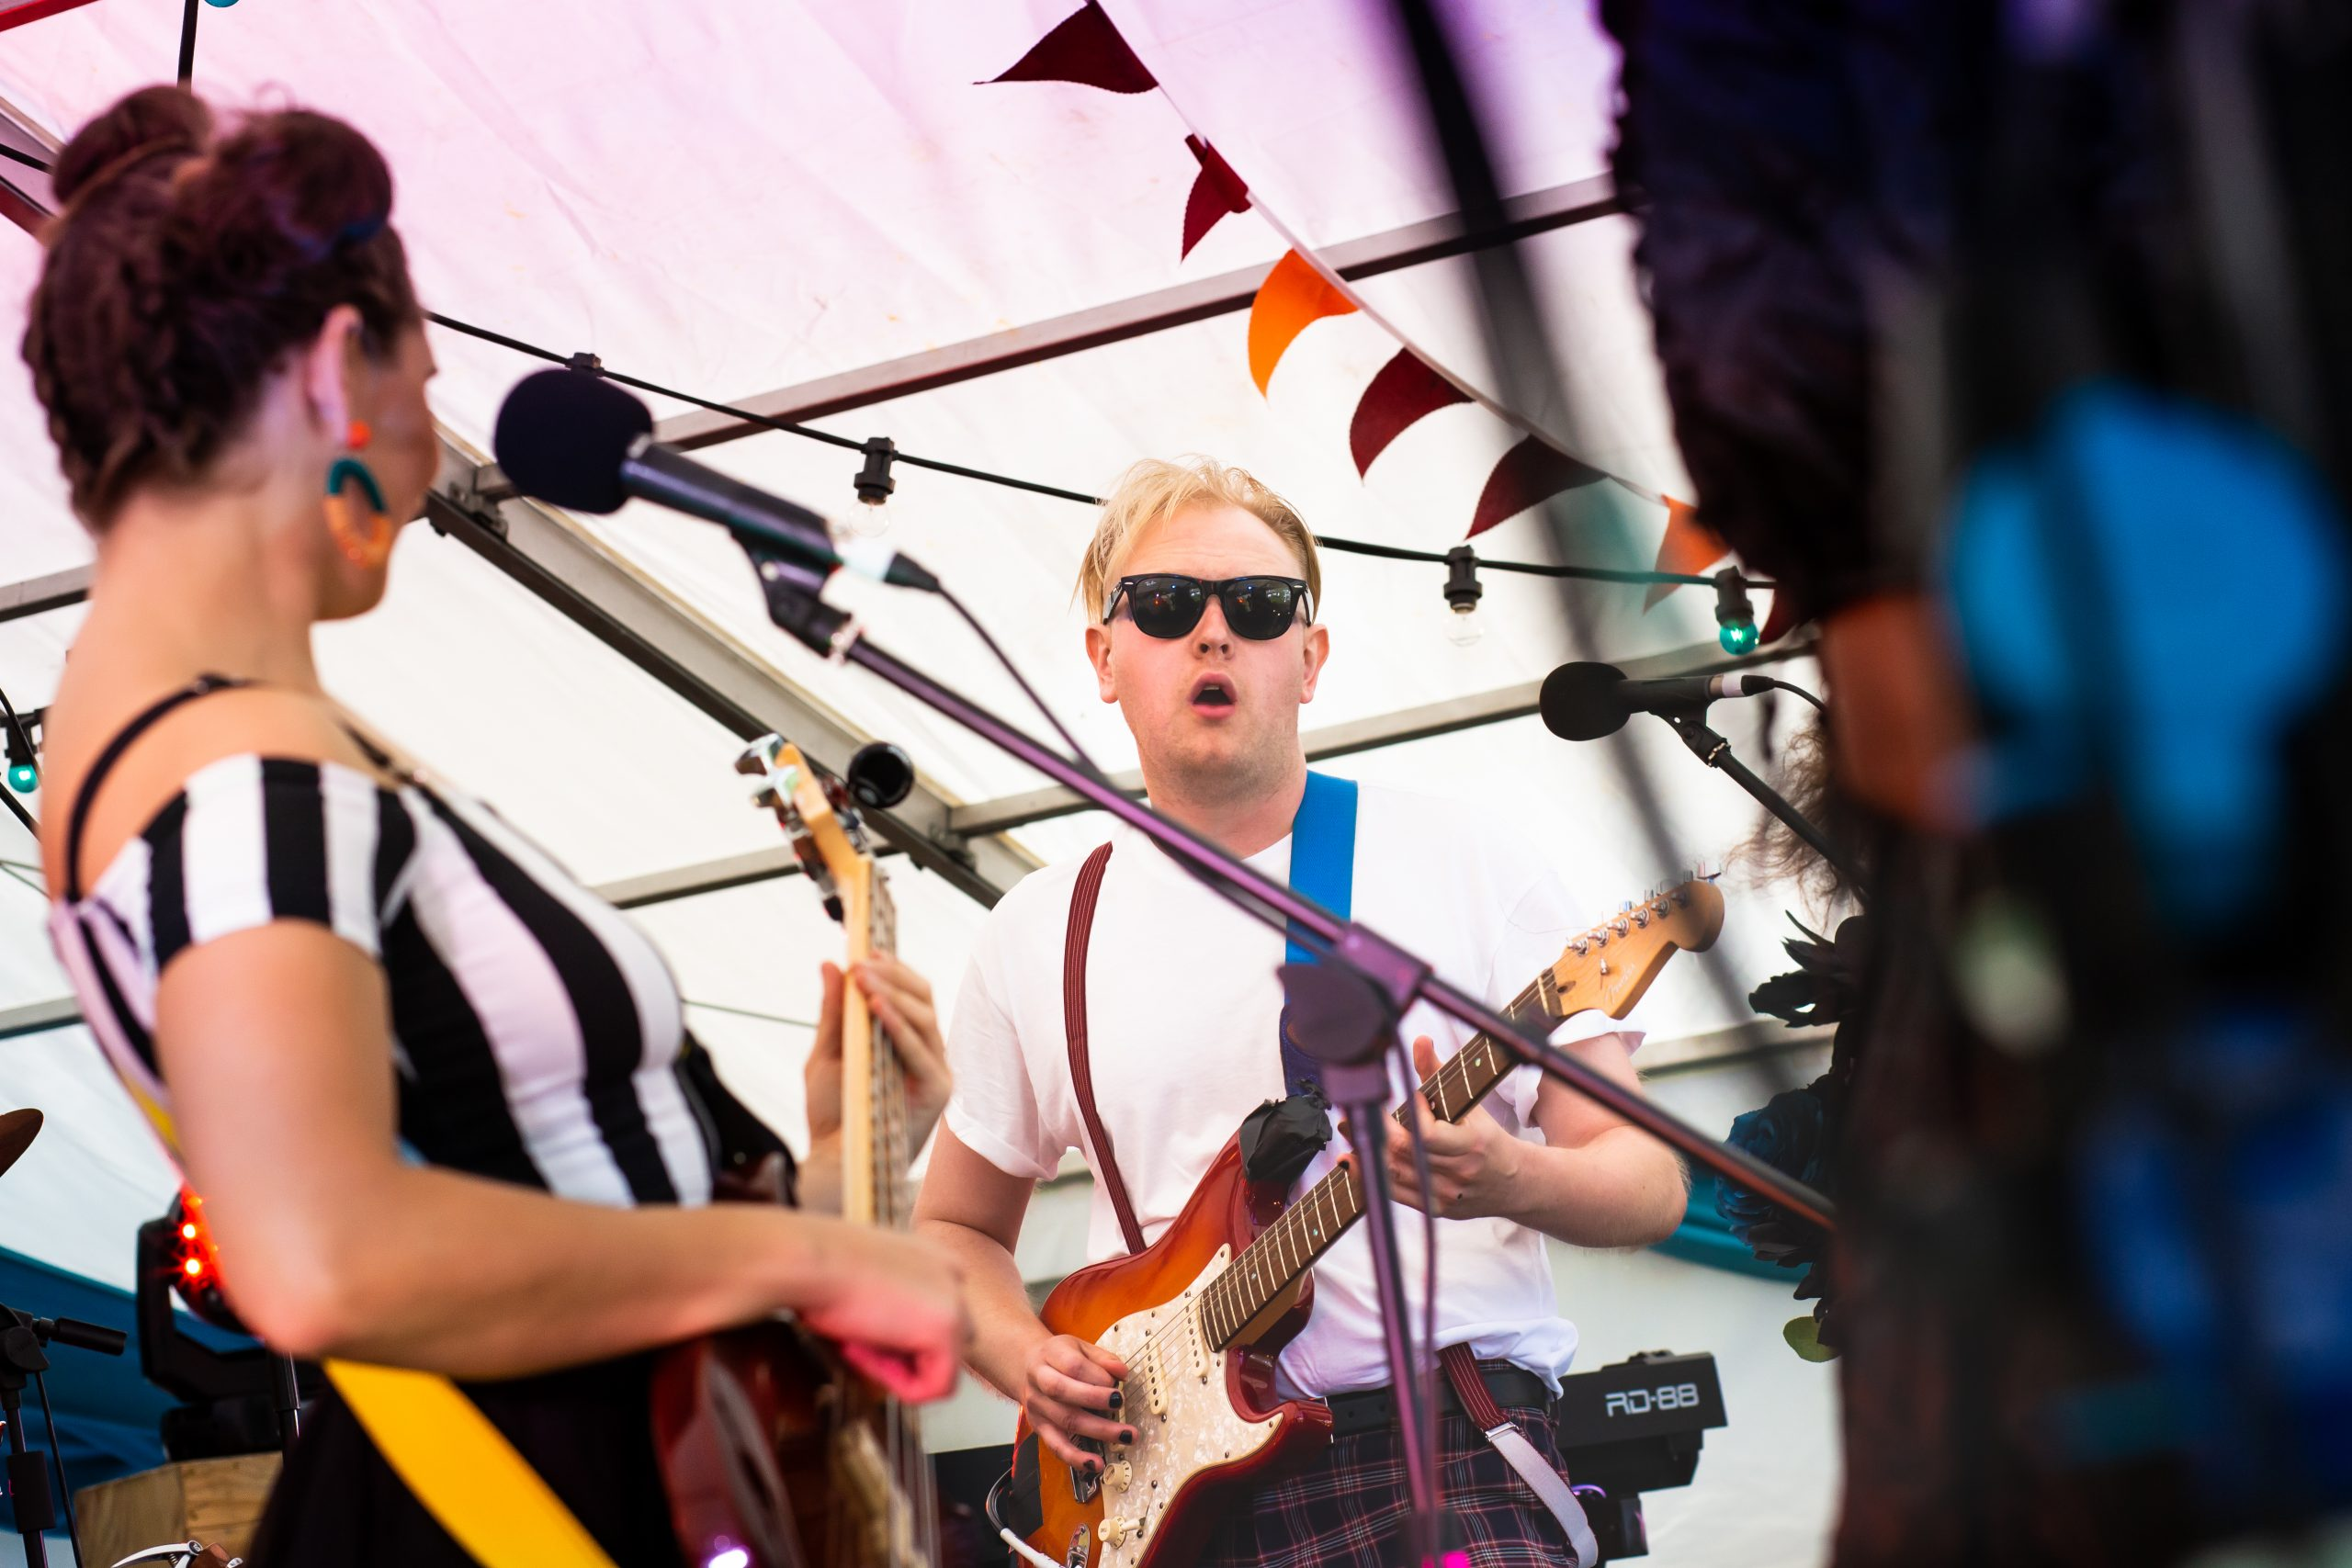 A band play guitars on stage beneath bunting